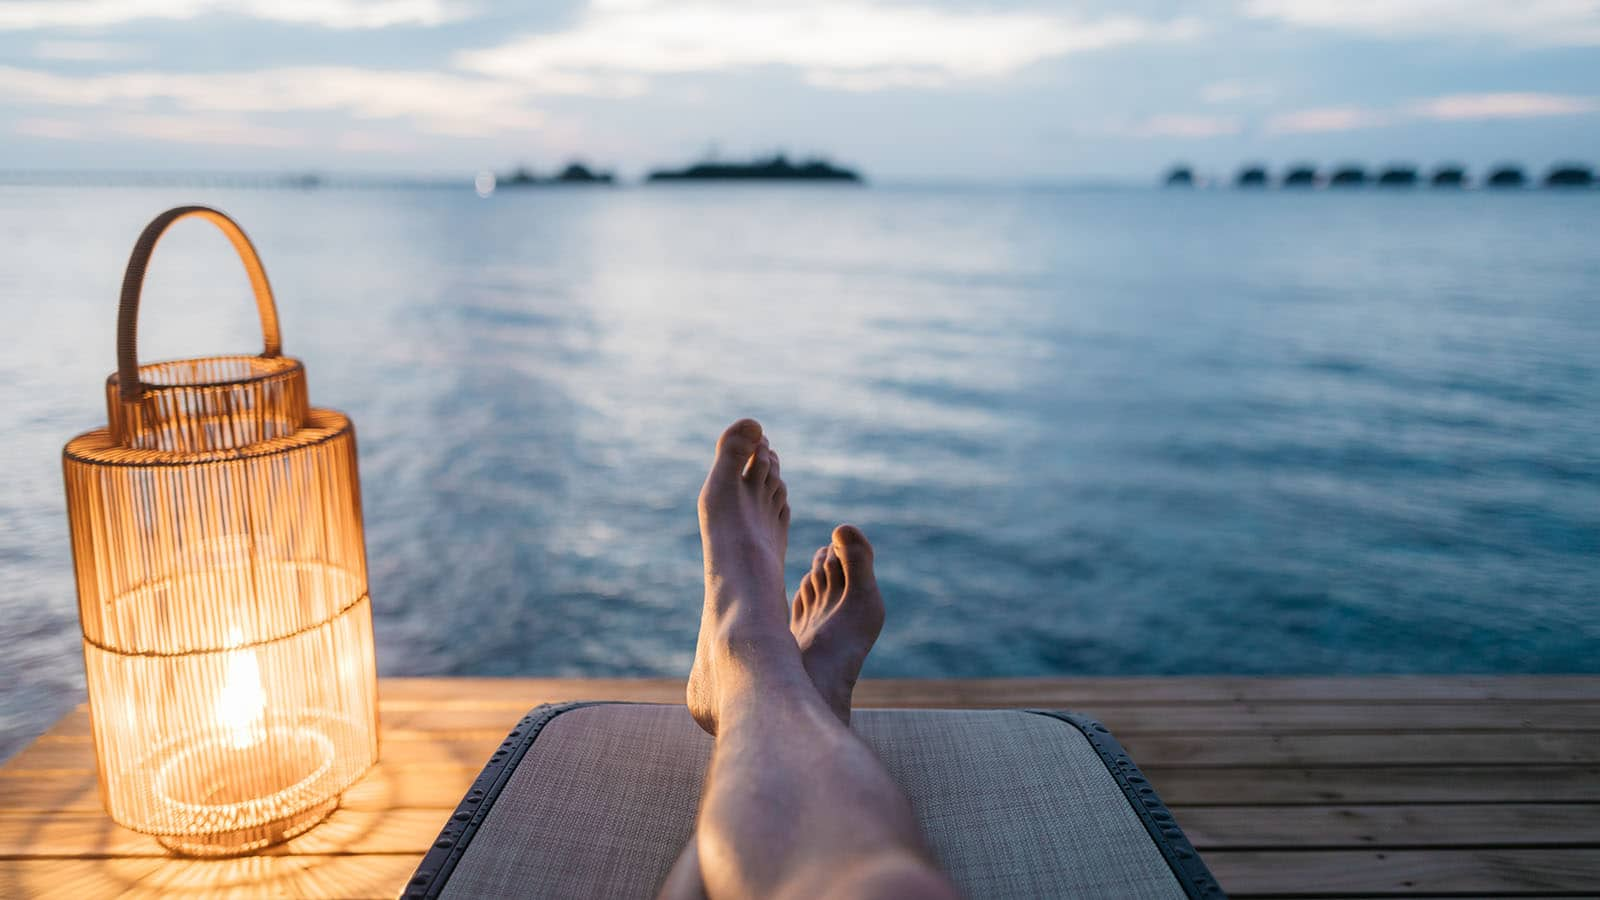 Feet relaxing near lake image